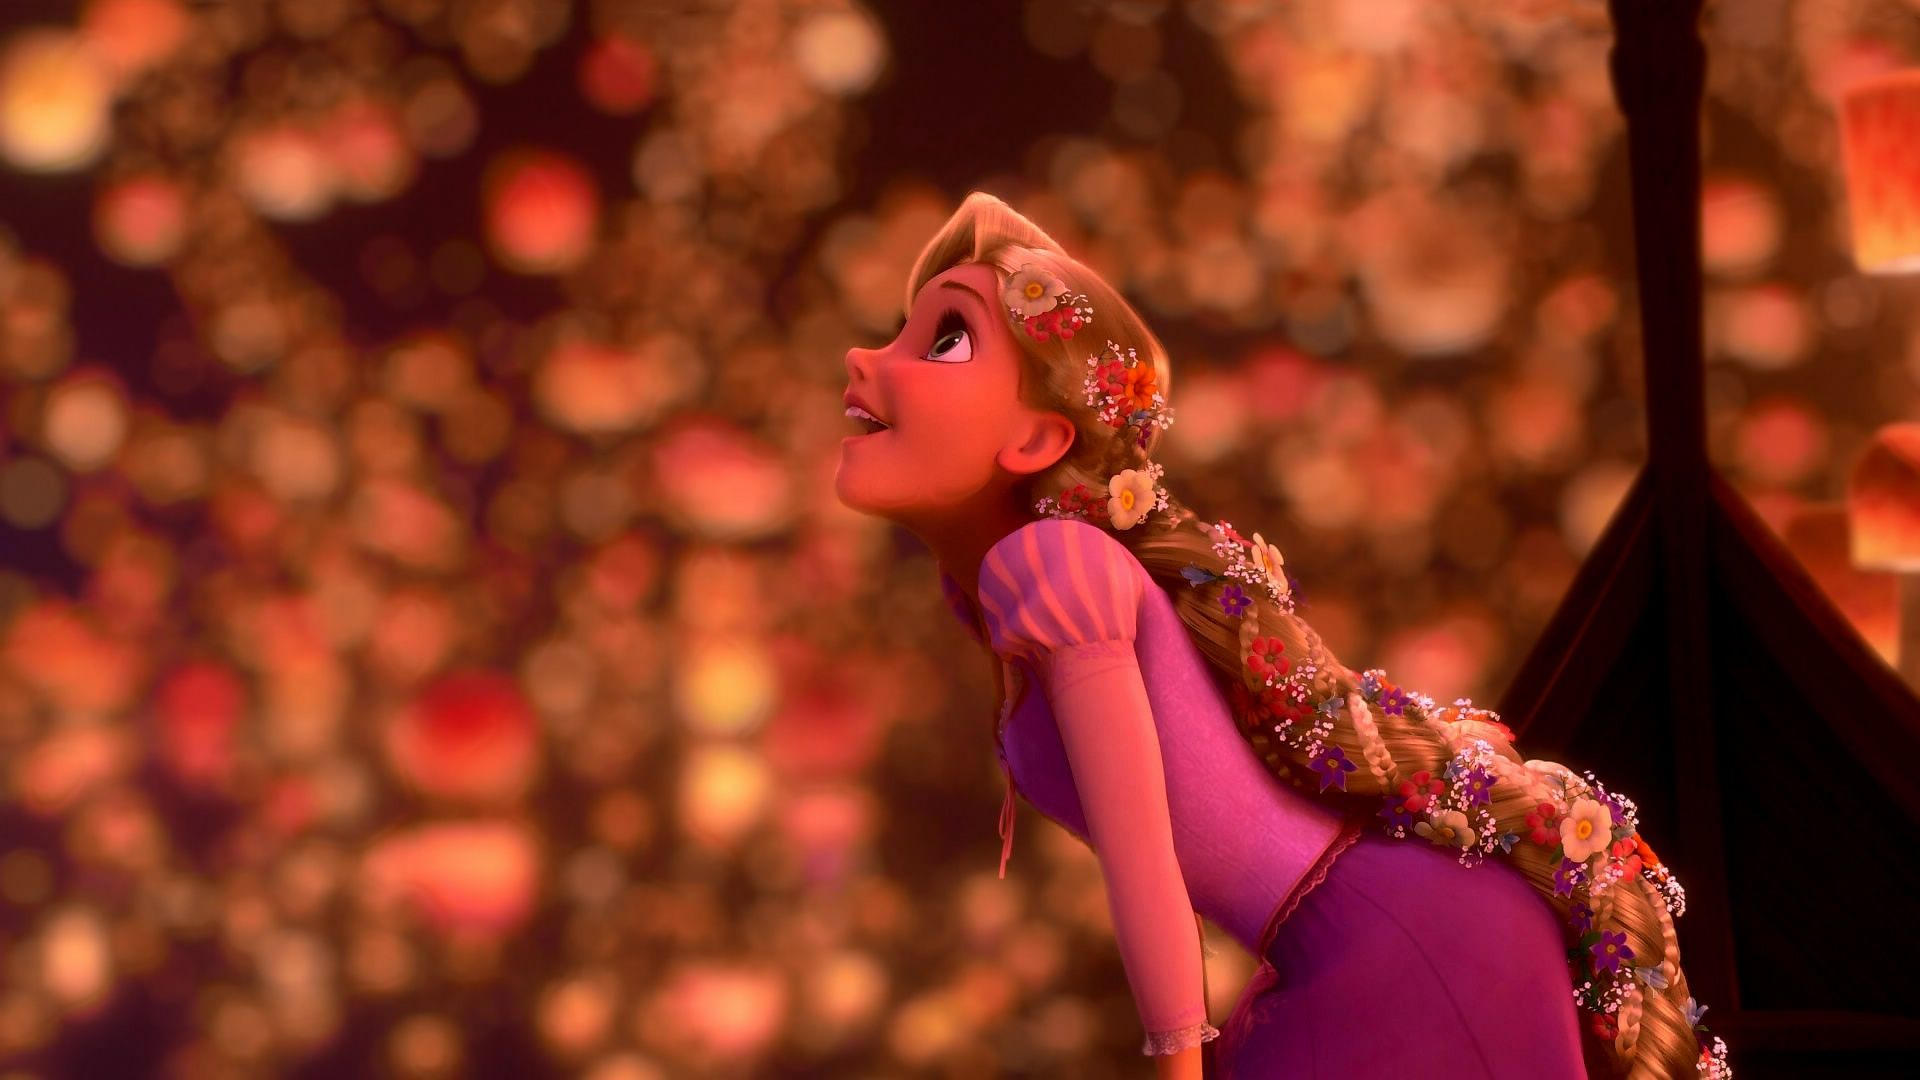 Tangled Images Rapunzel HD Wallpaper And Background Photos Wallpapers